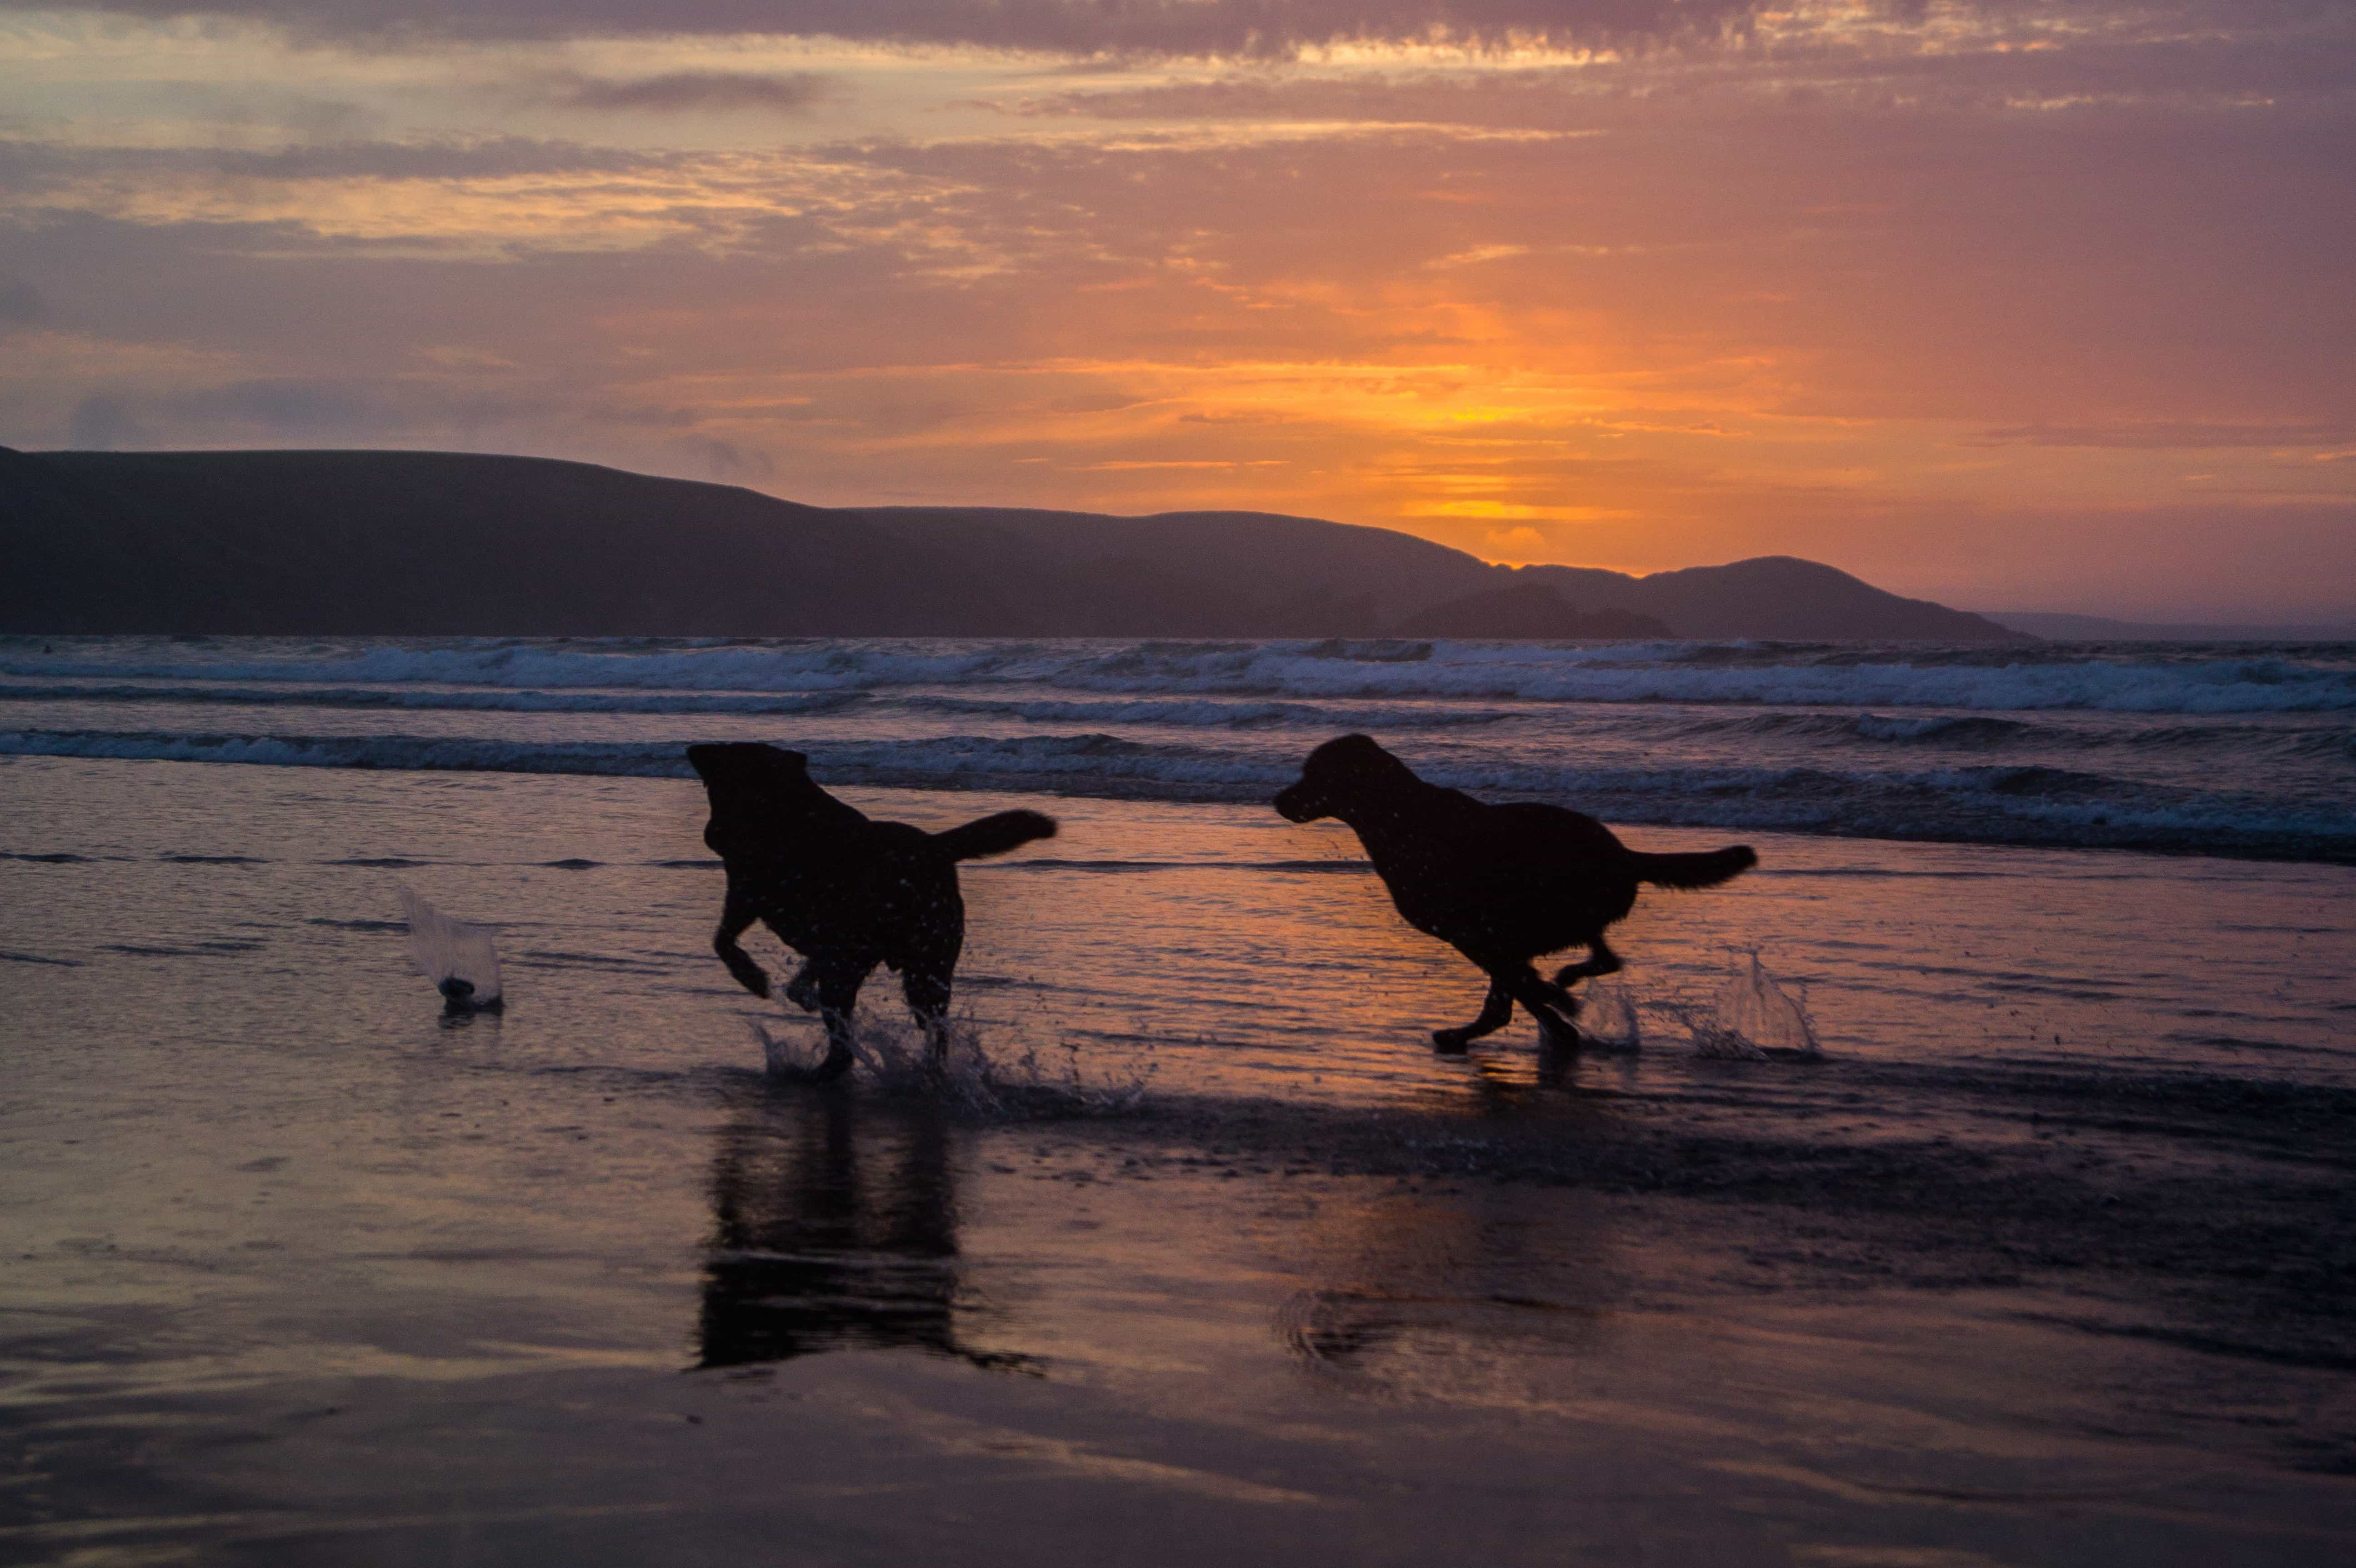 Free Winter Animal Wallpaper Image Libre Eau Coucher De Soleil Plage Oc 233 An Chien